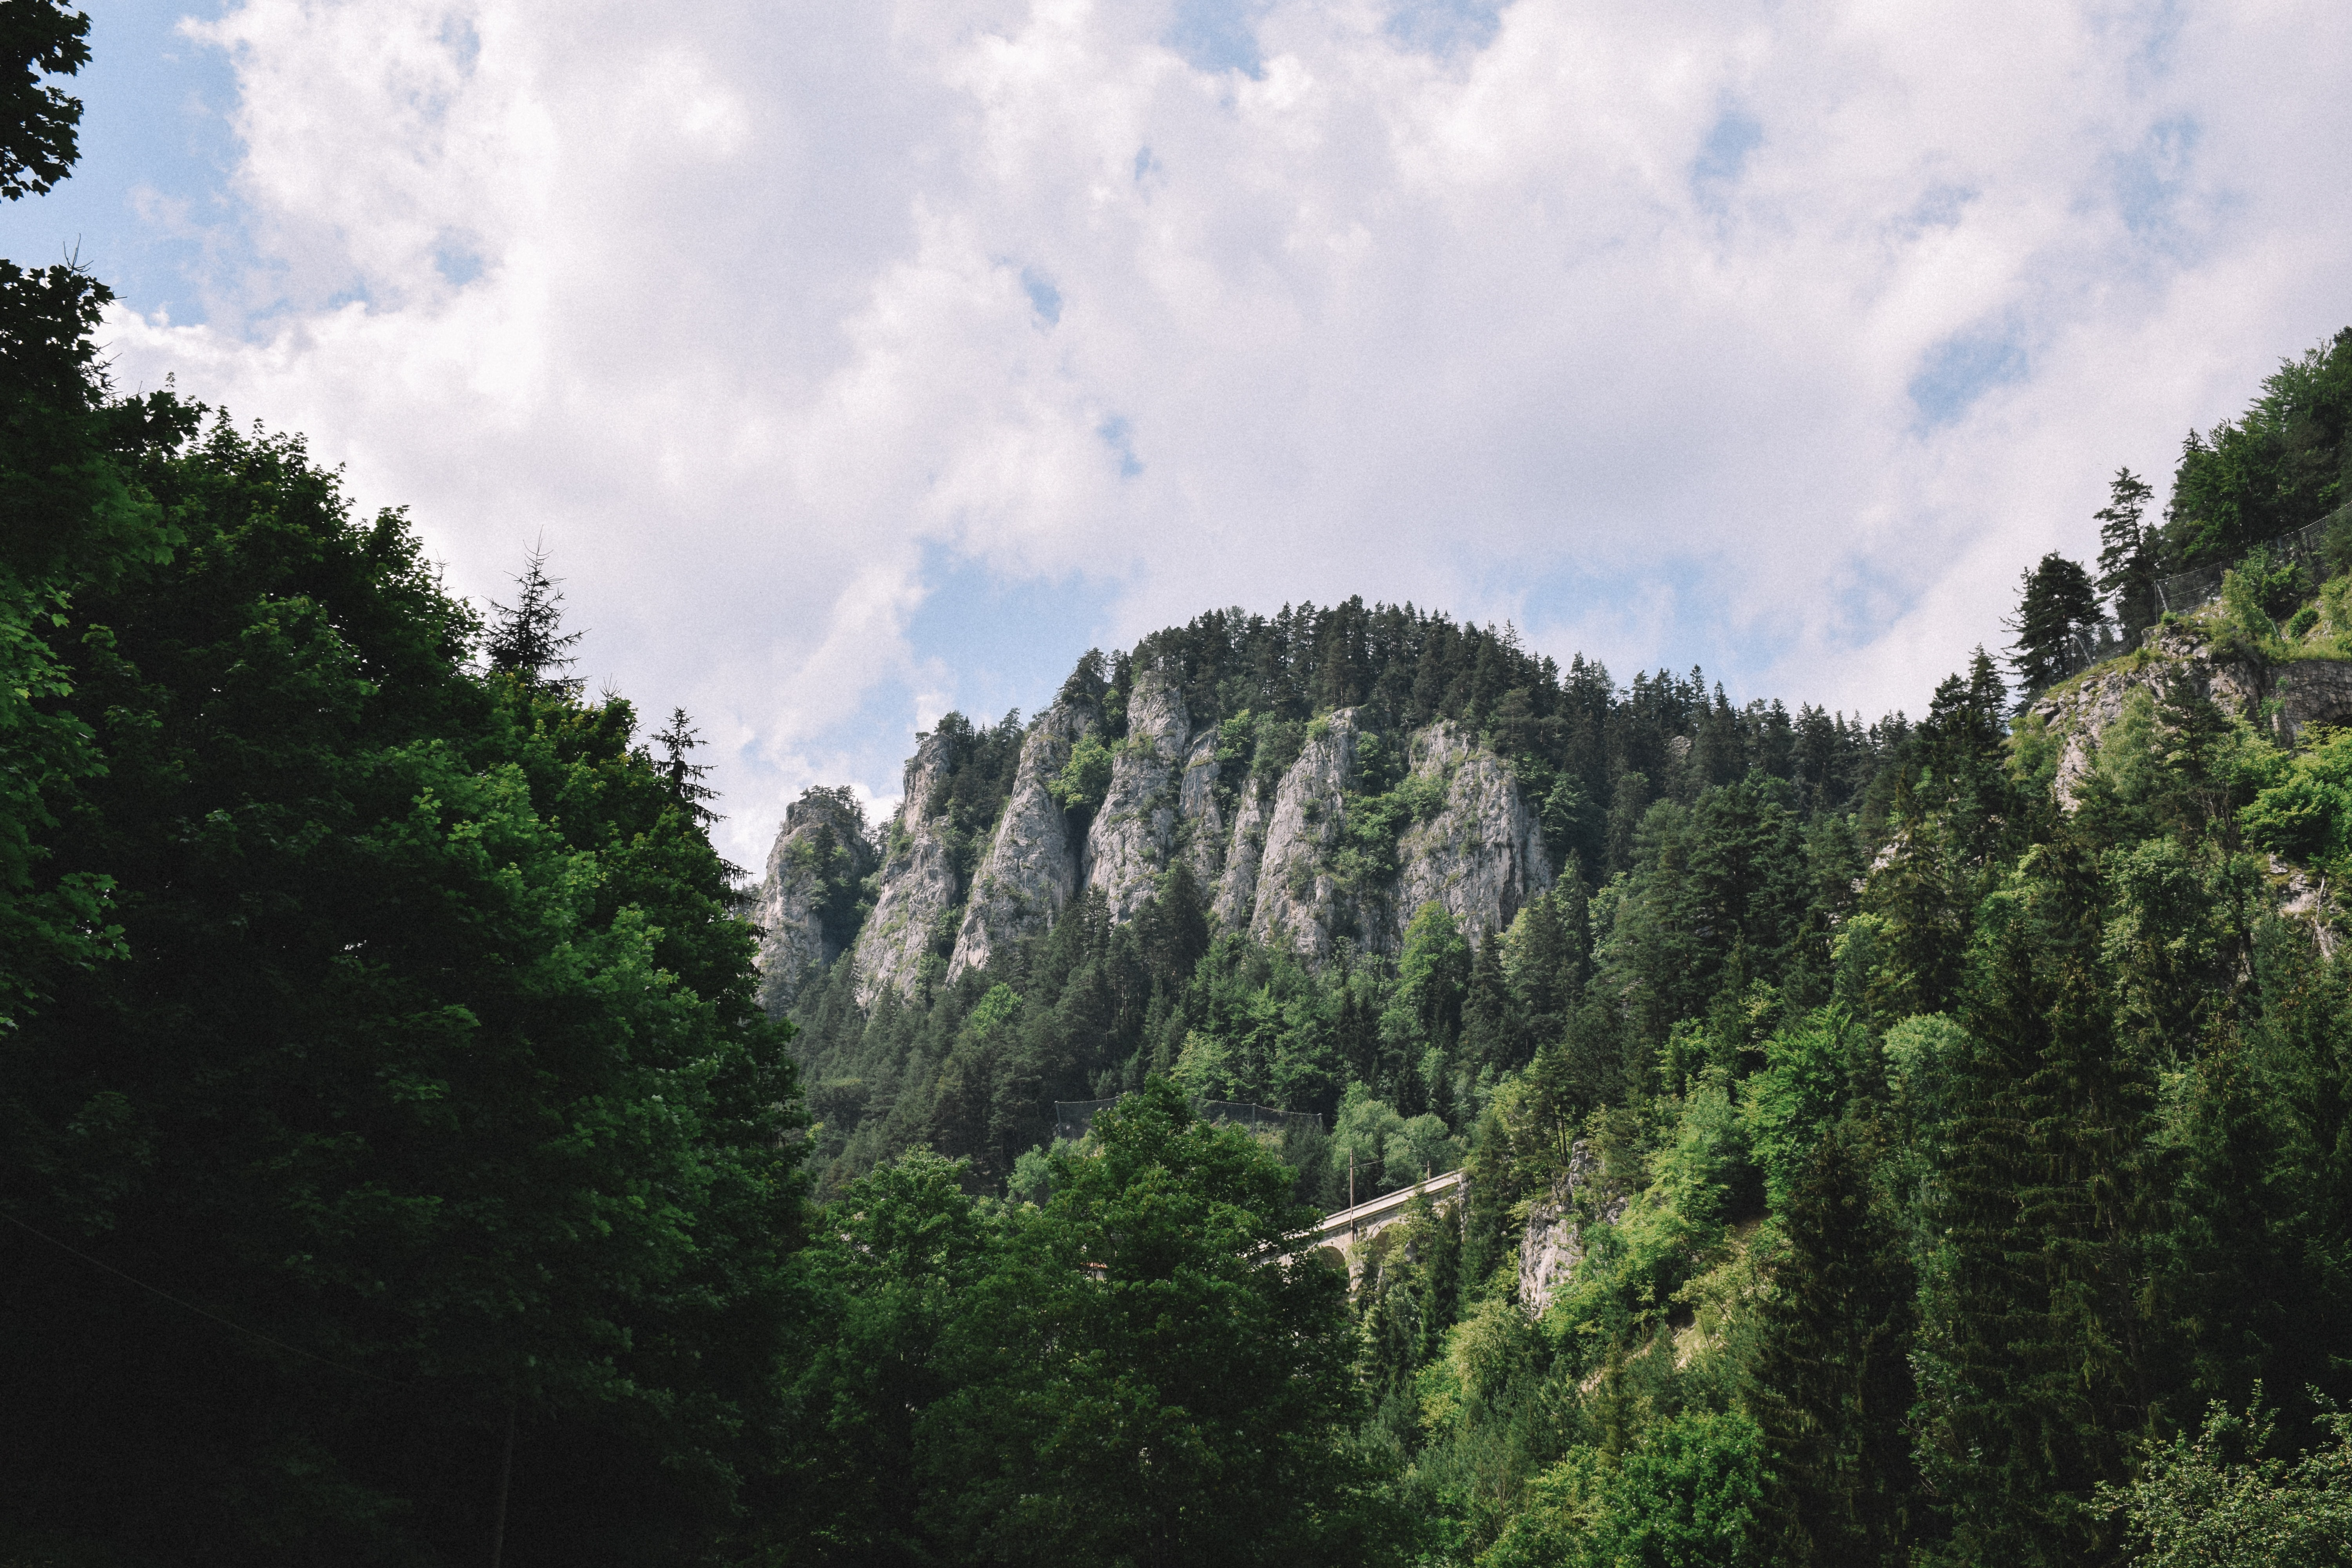 landscape photography of green trees and mountain